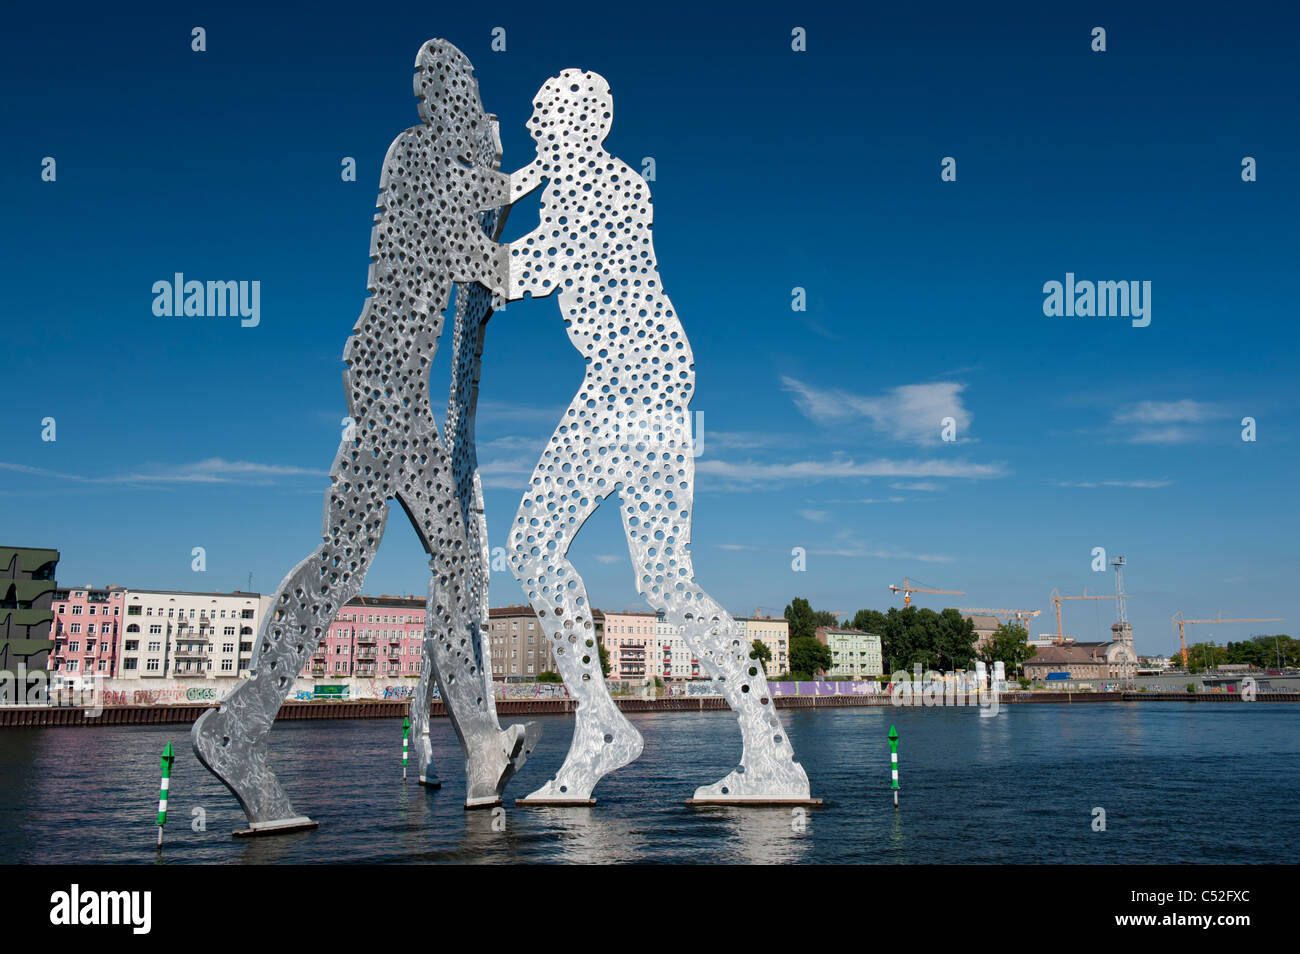 Huge Metallic sculpture called Molecule Man by Jonathan Borofsky in Spree River Berlin - Stock Image